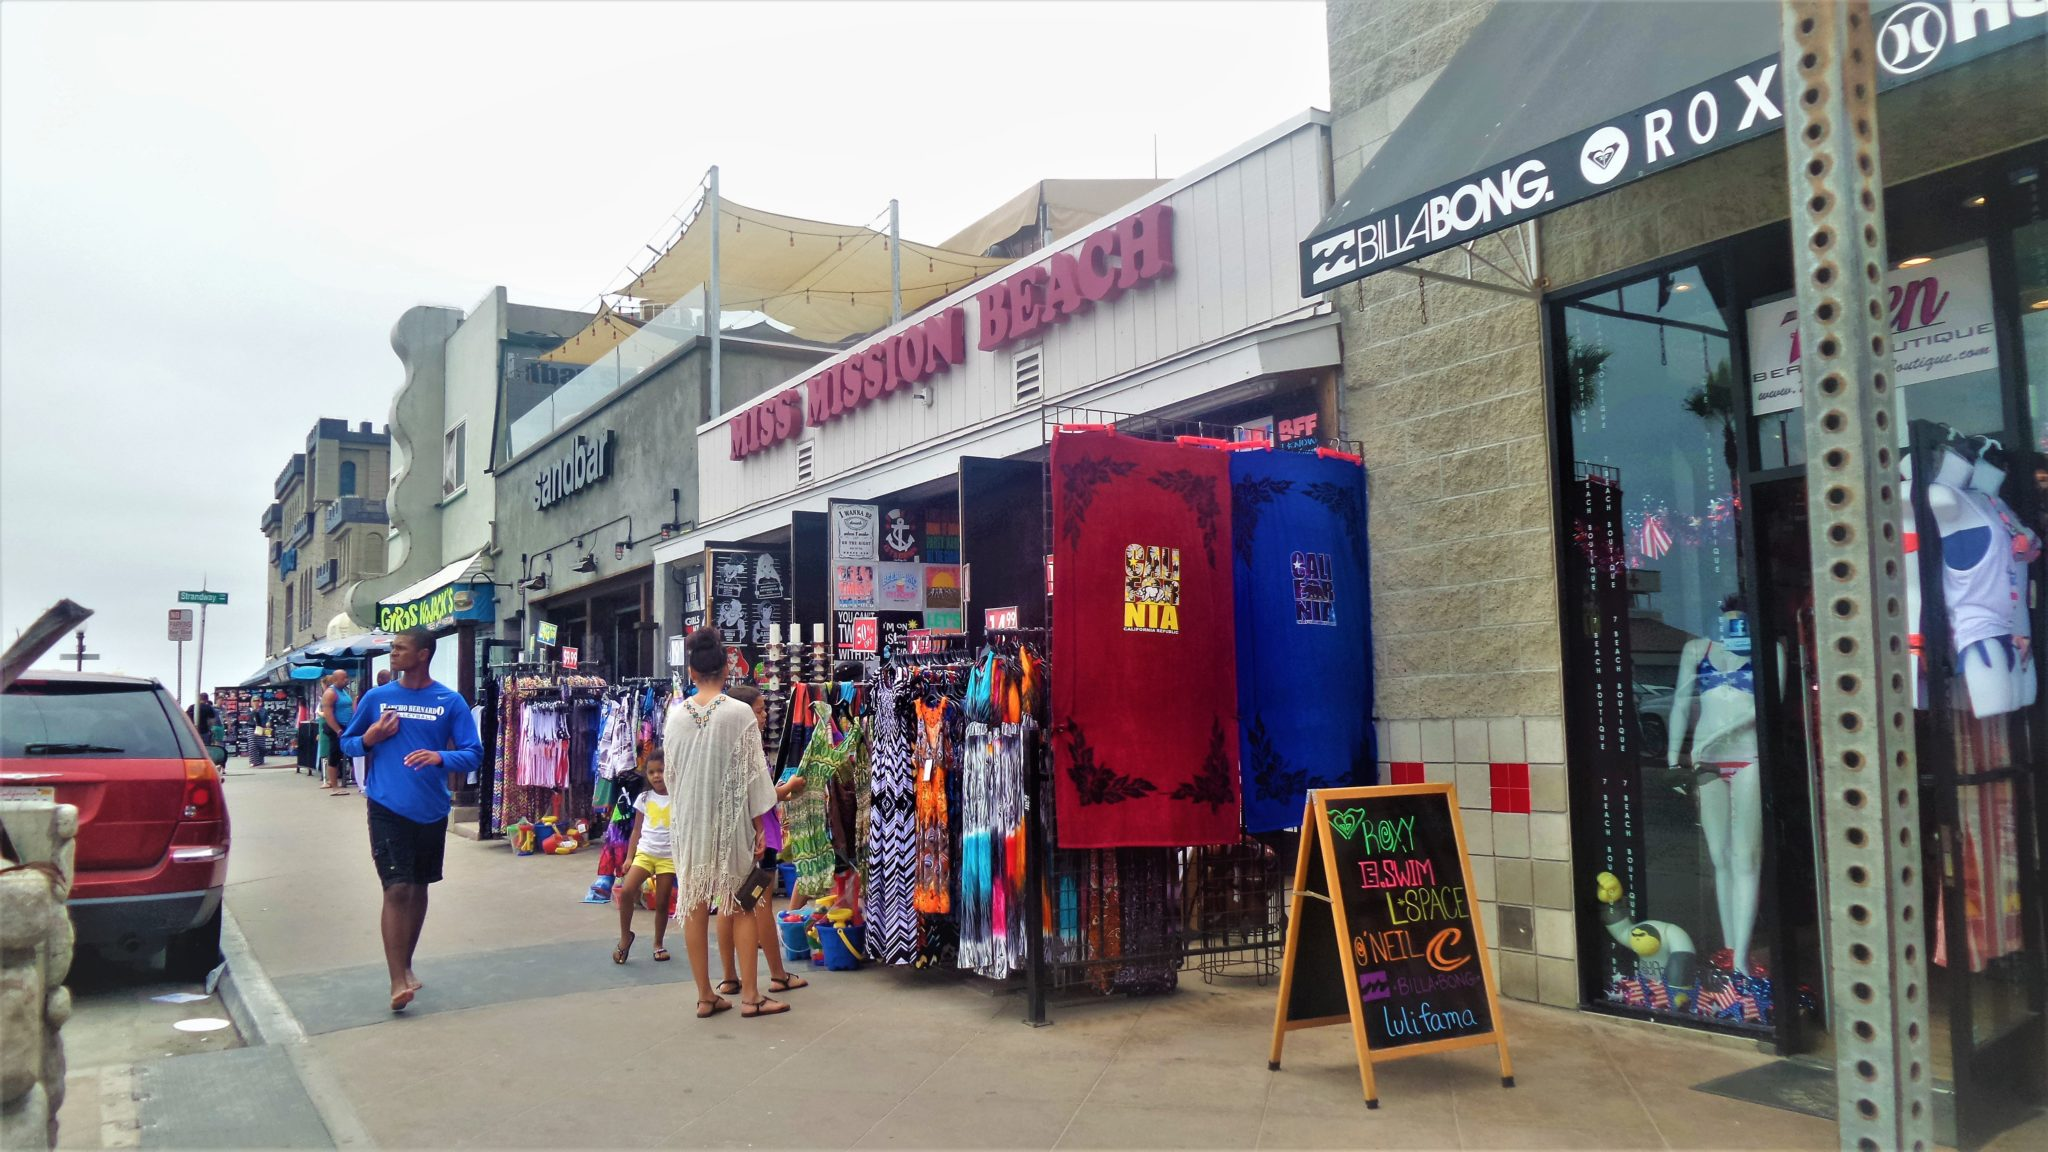 Mission Beach shops, things to do in San Diego, California